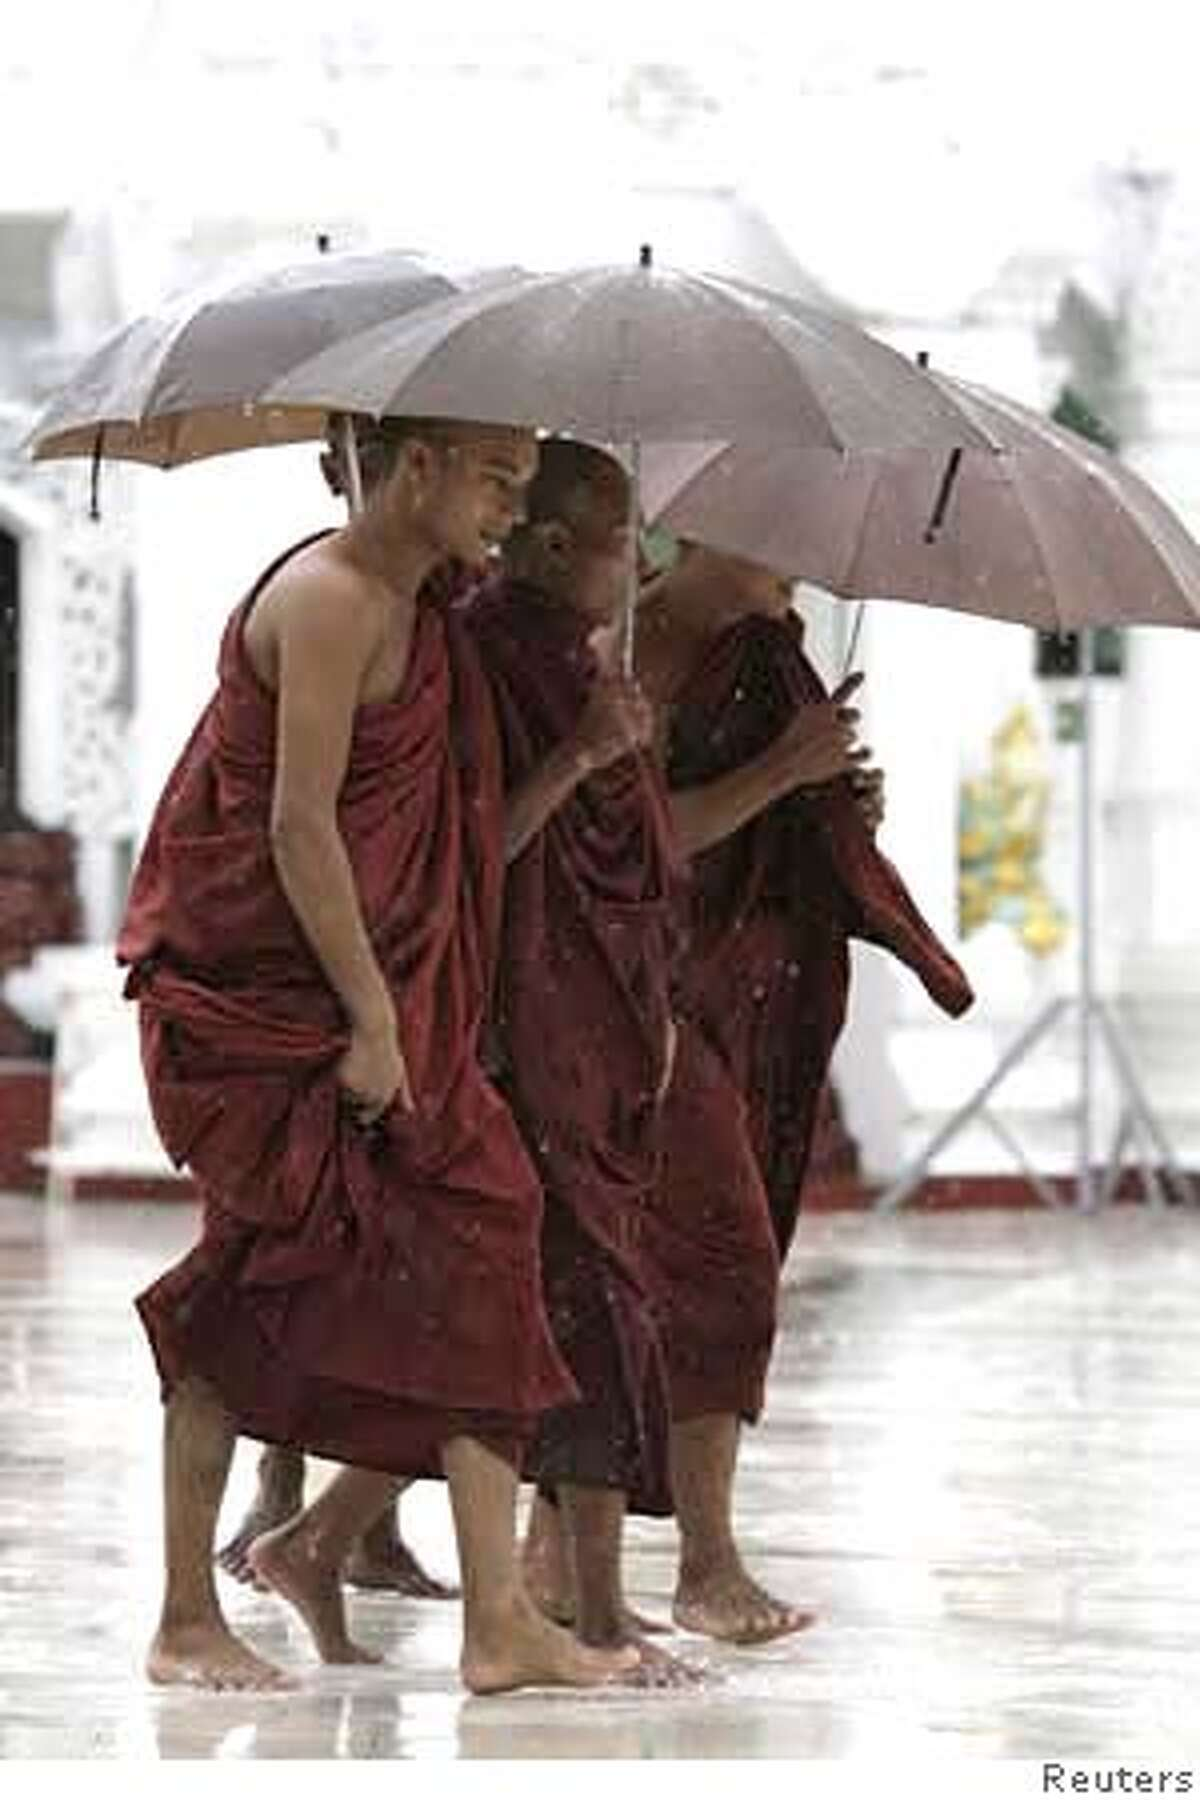 ###Live Caption:Buddhist monks walk in the rain at Shwedagon Pagoda in Myanmar's former capital Yangon May 18, 2008. REUTERS/Strinnger (MYANMAR)###Caption History:Buddhist monks walk in the rain at Shwedagon Pagoda in Myanmar's former capital Yangon May 18, 2008. REUTERS/Strinnger (MYANMAR)###Notes:Buddhist monks walk in the rain at Shwedagon Pagoda in Myanmar's former capital Yangon###Special Instructions: